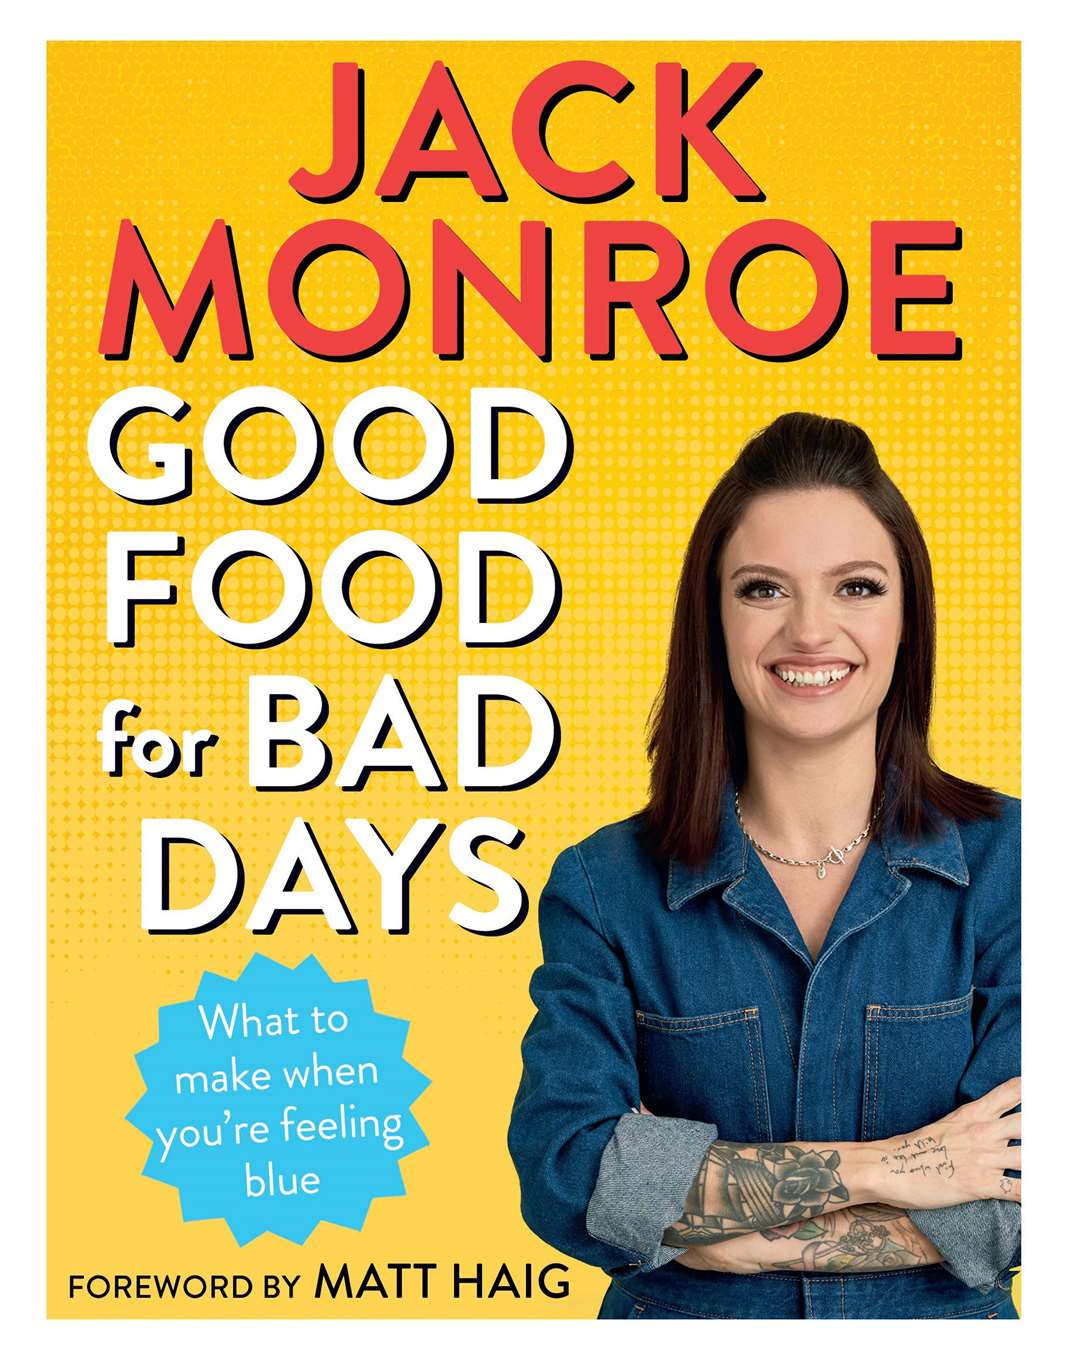 Jack Monroe's Good Food For Bad Days.